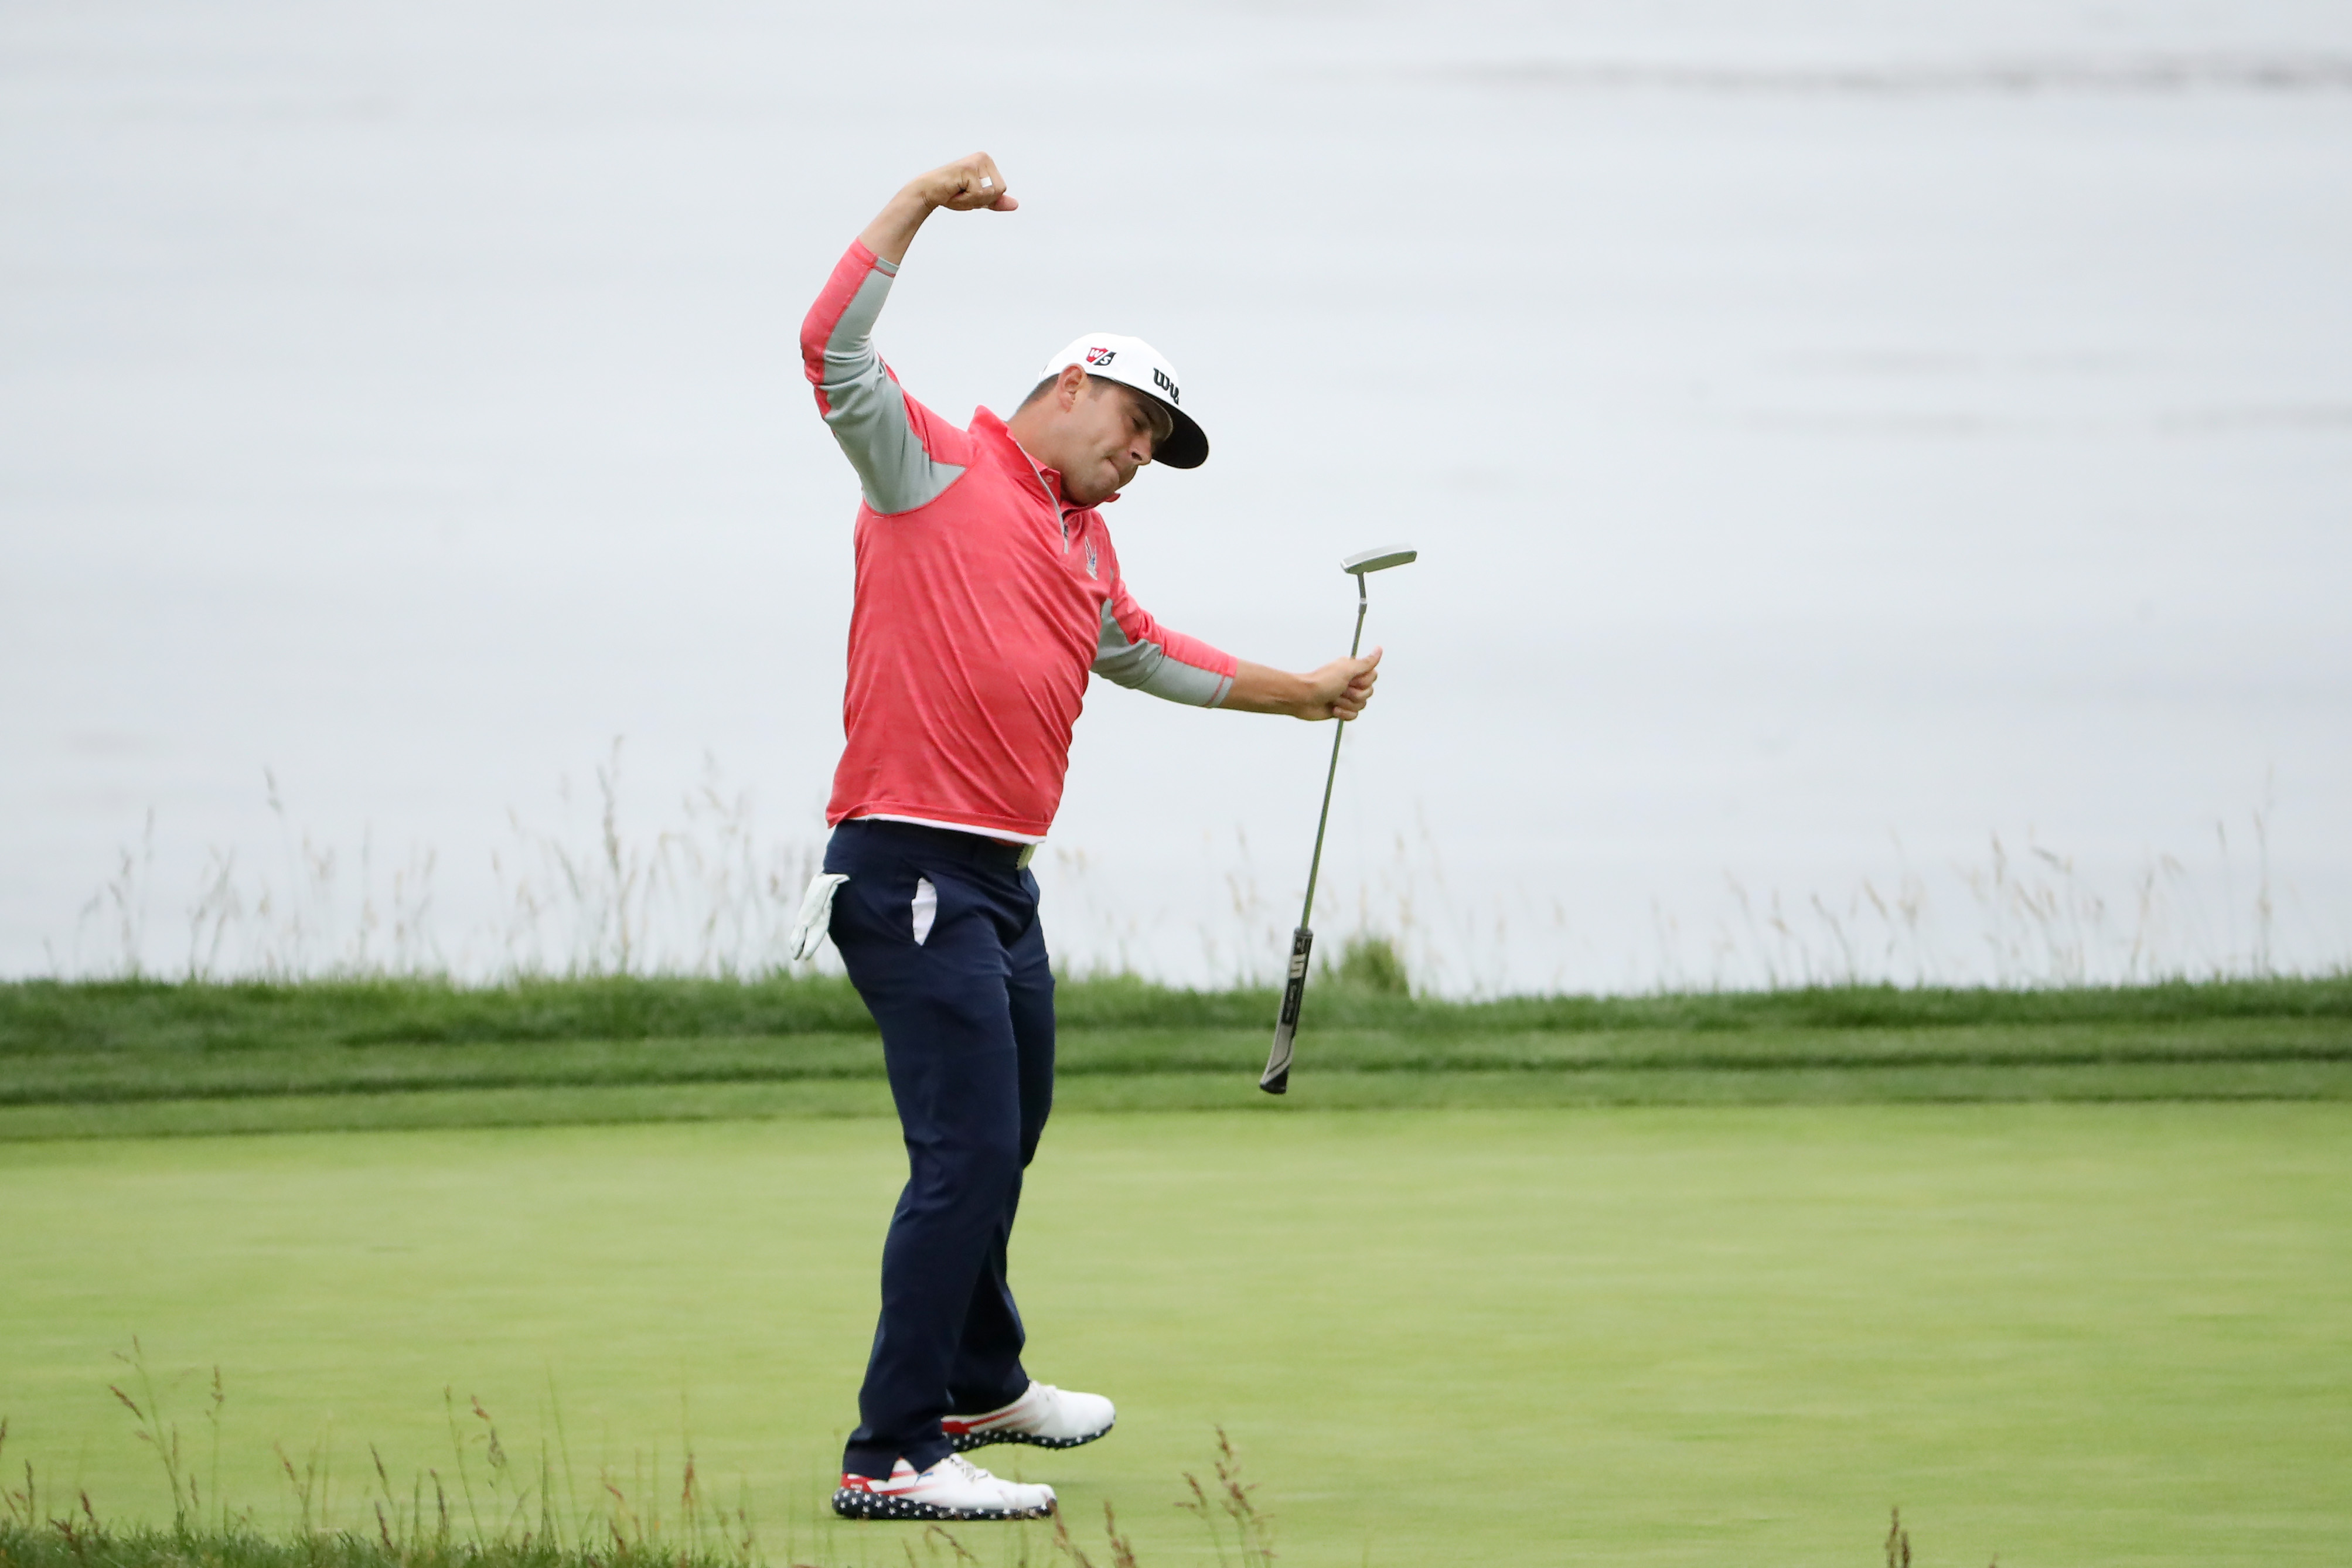 The 4 big things Gary Woodland did to beat Brooks Koepka and win the U.S. Open